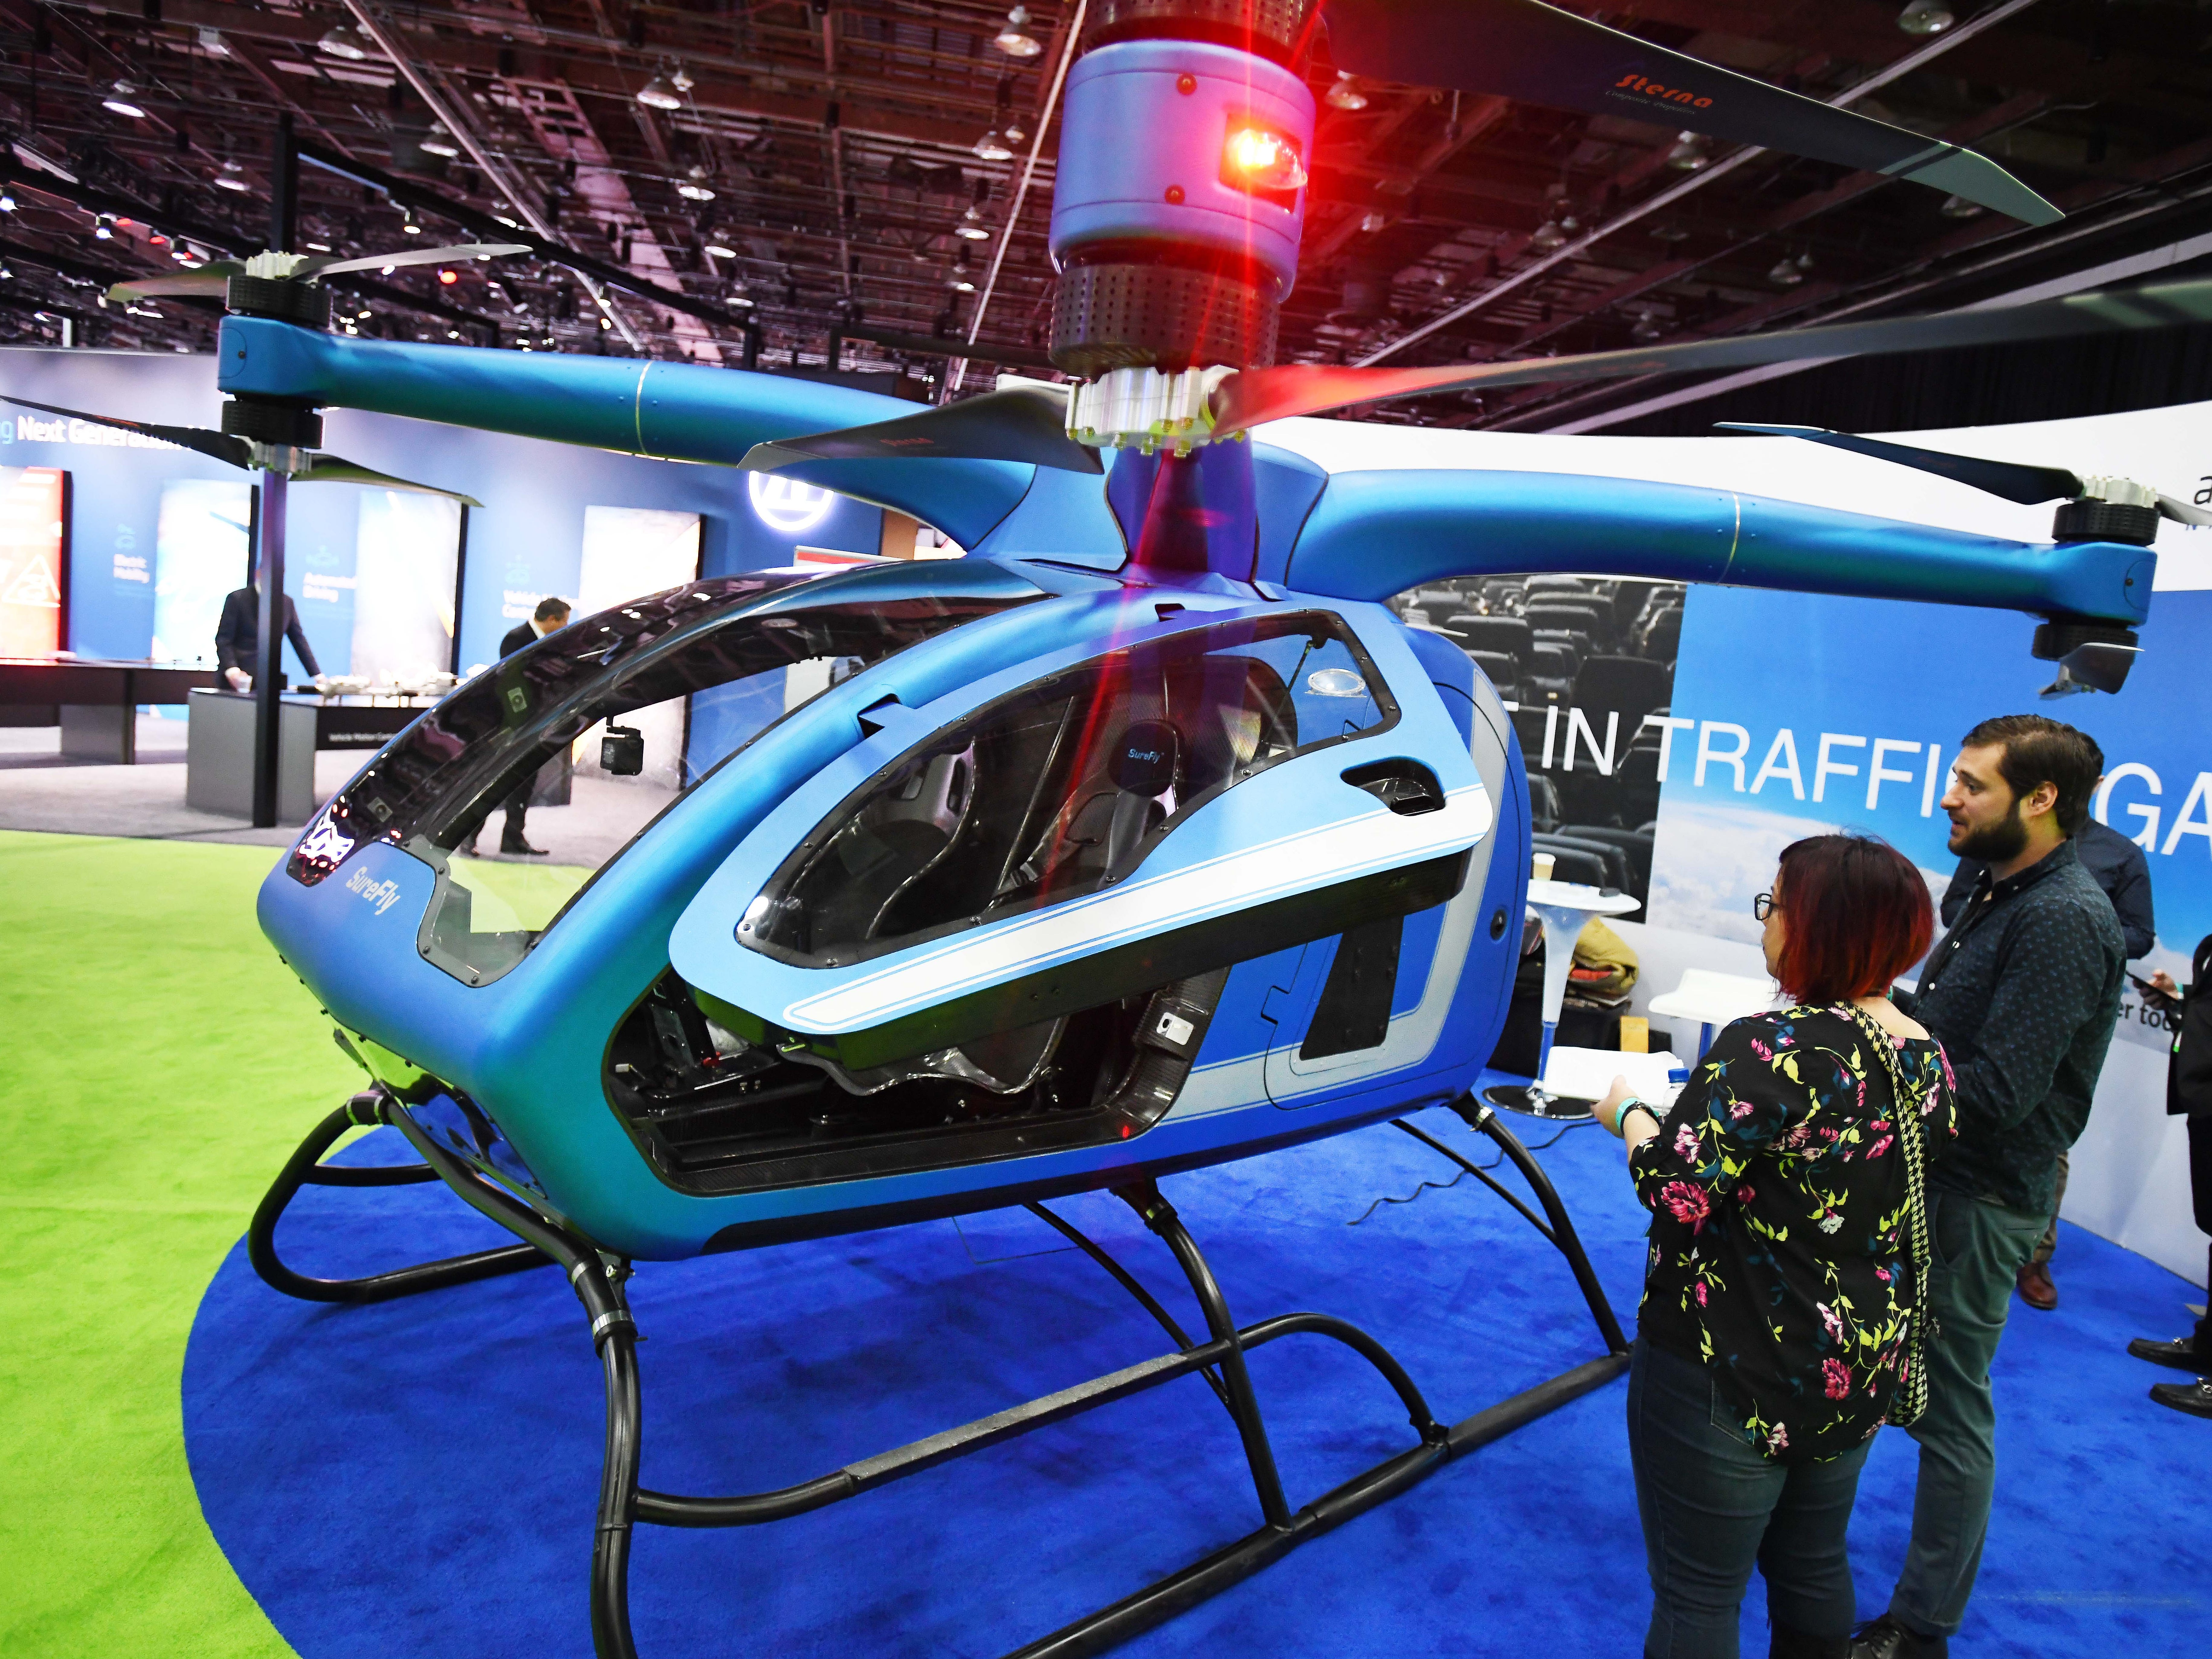 Why drive when you can fly in a SureFly Hybrid Electric Helicopter? A functional proof of concept is on display during media days at the North American International Auto Show.